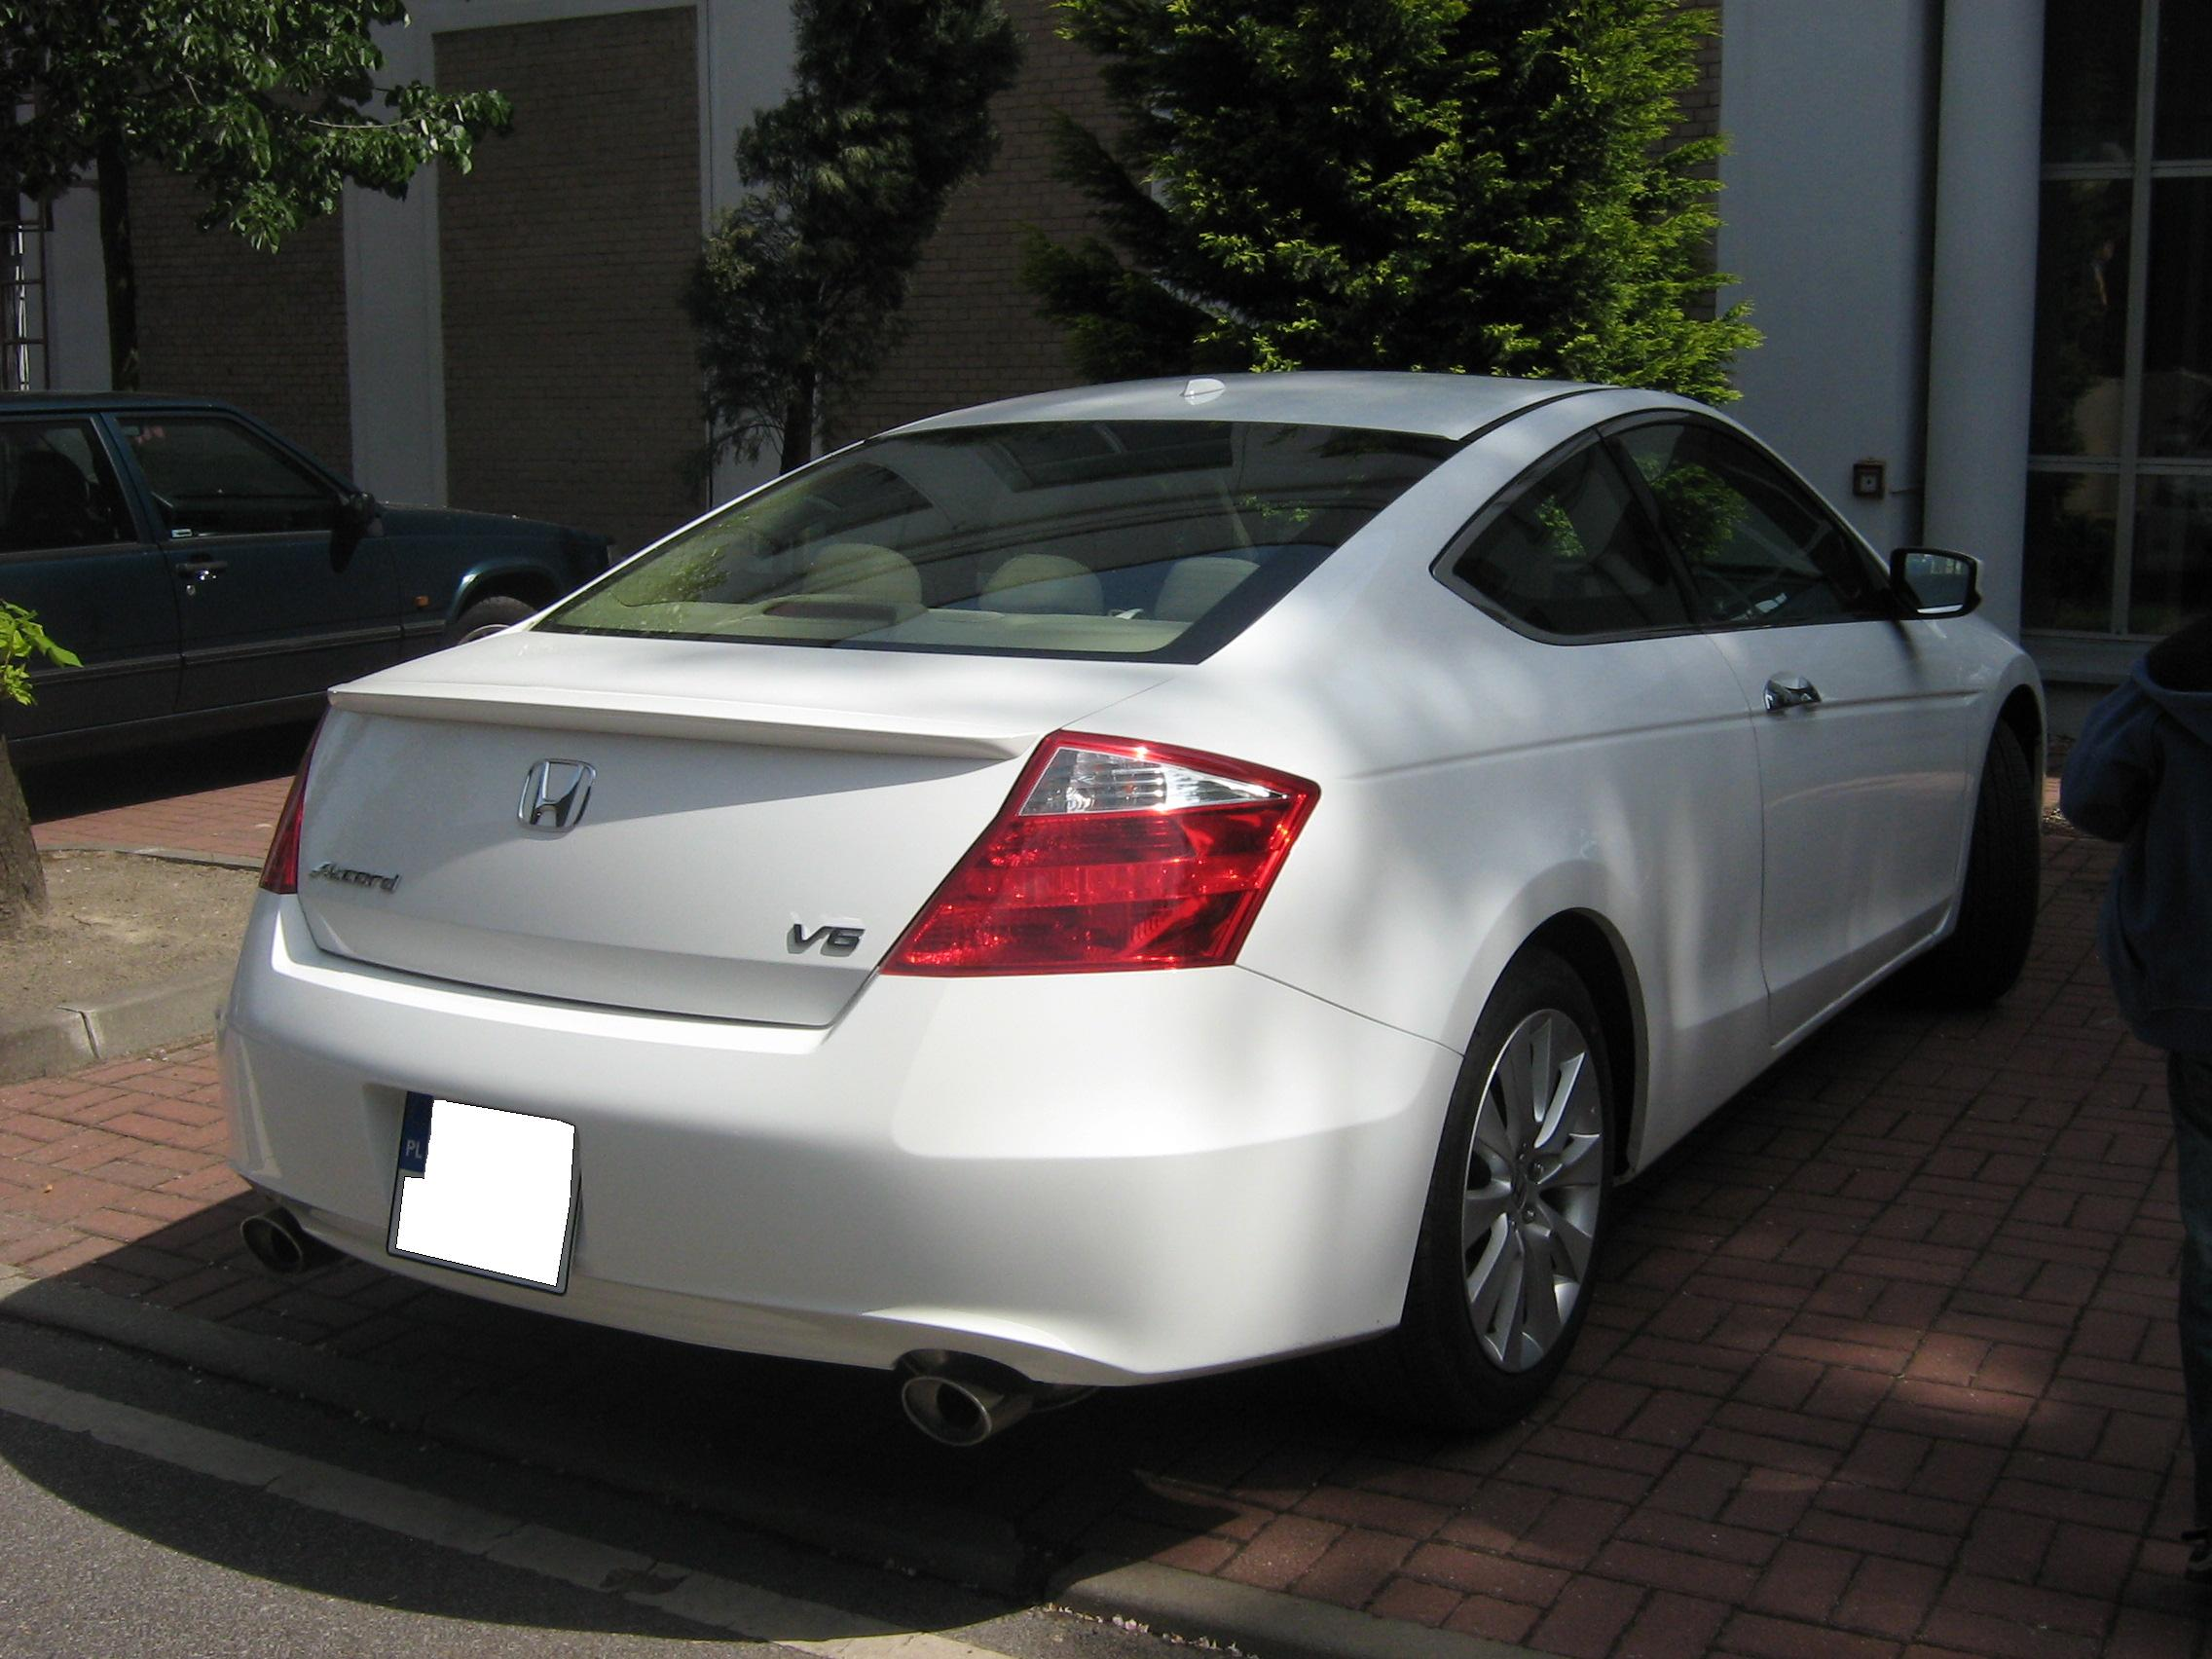 2009 Honda Accord viii coupe - pictures, information and specs - Auto-Database.com